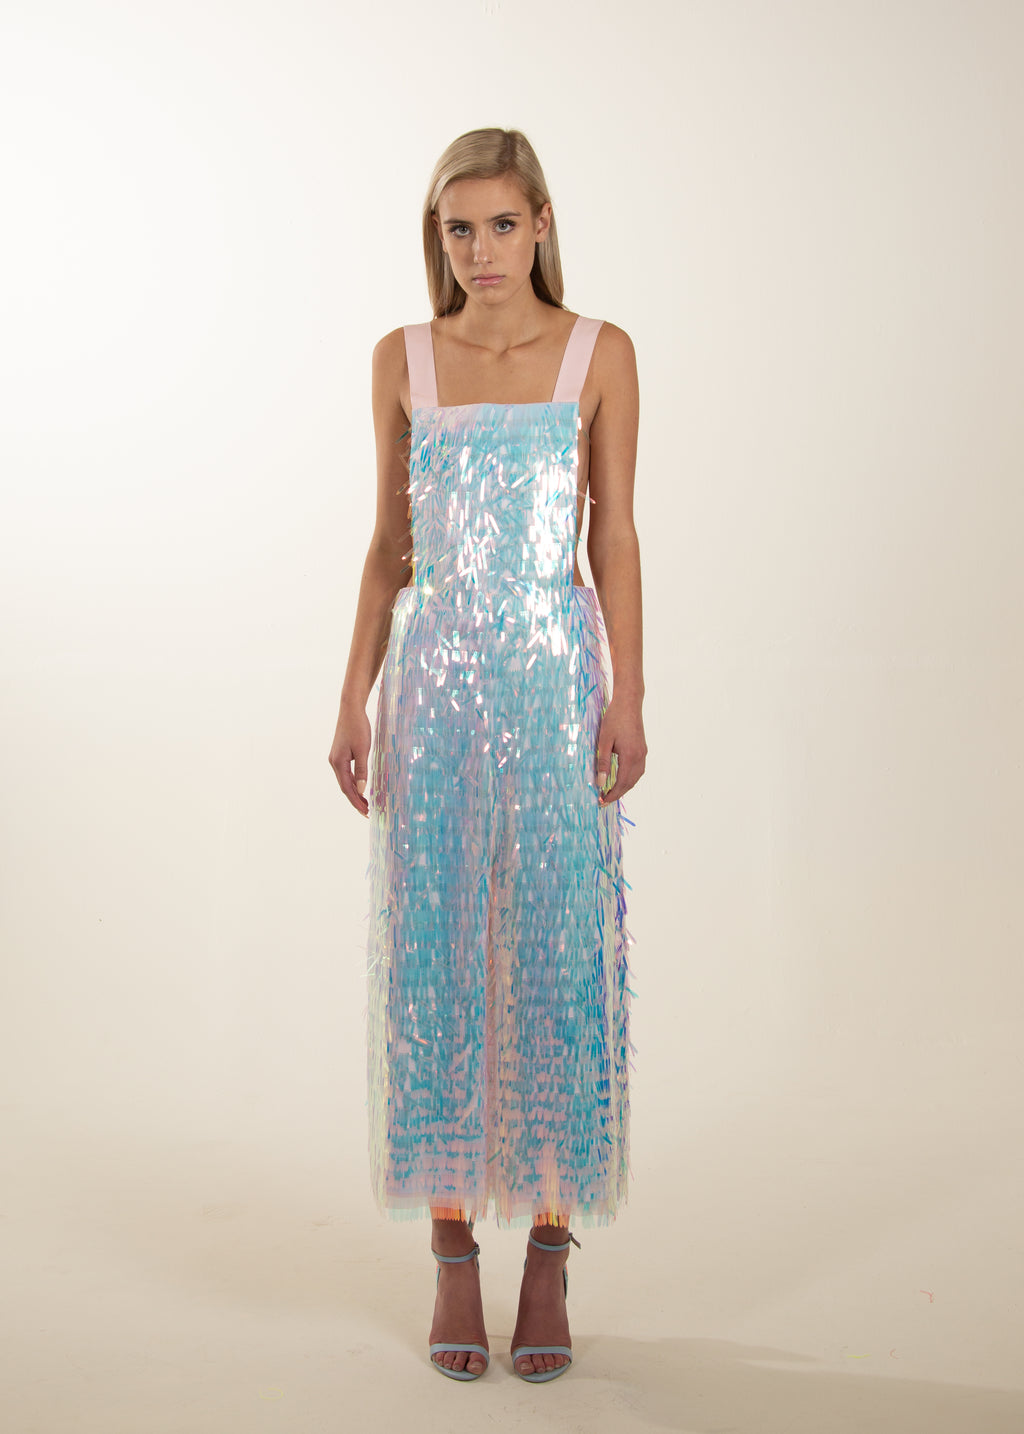 MADISON SEQUIN OVERALLS (PREORDER)